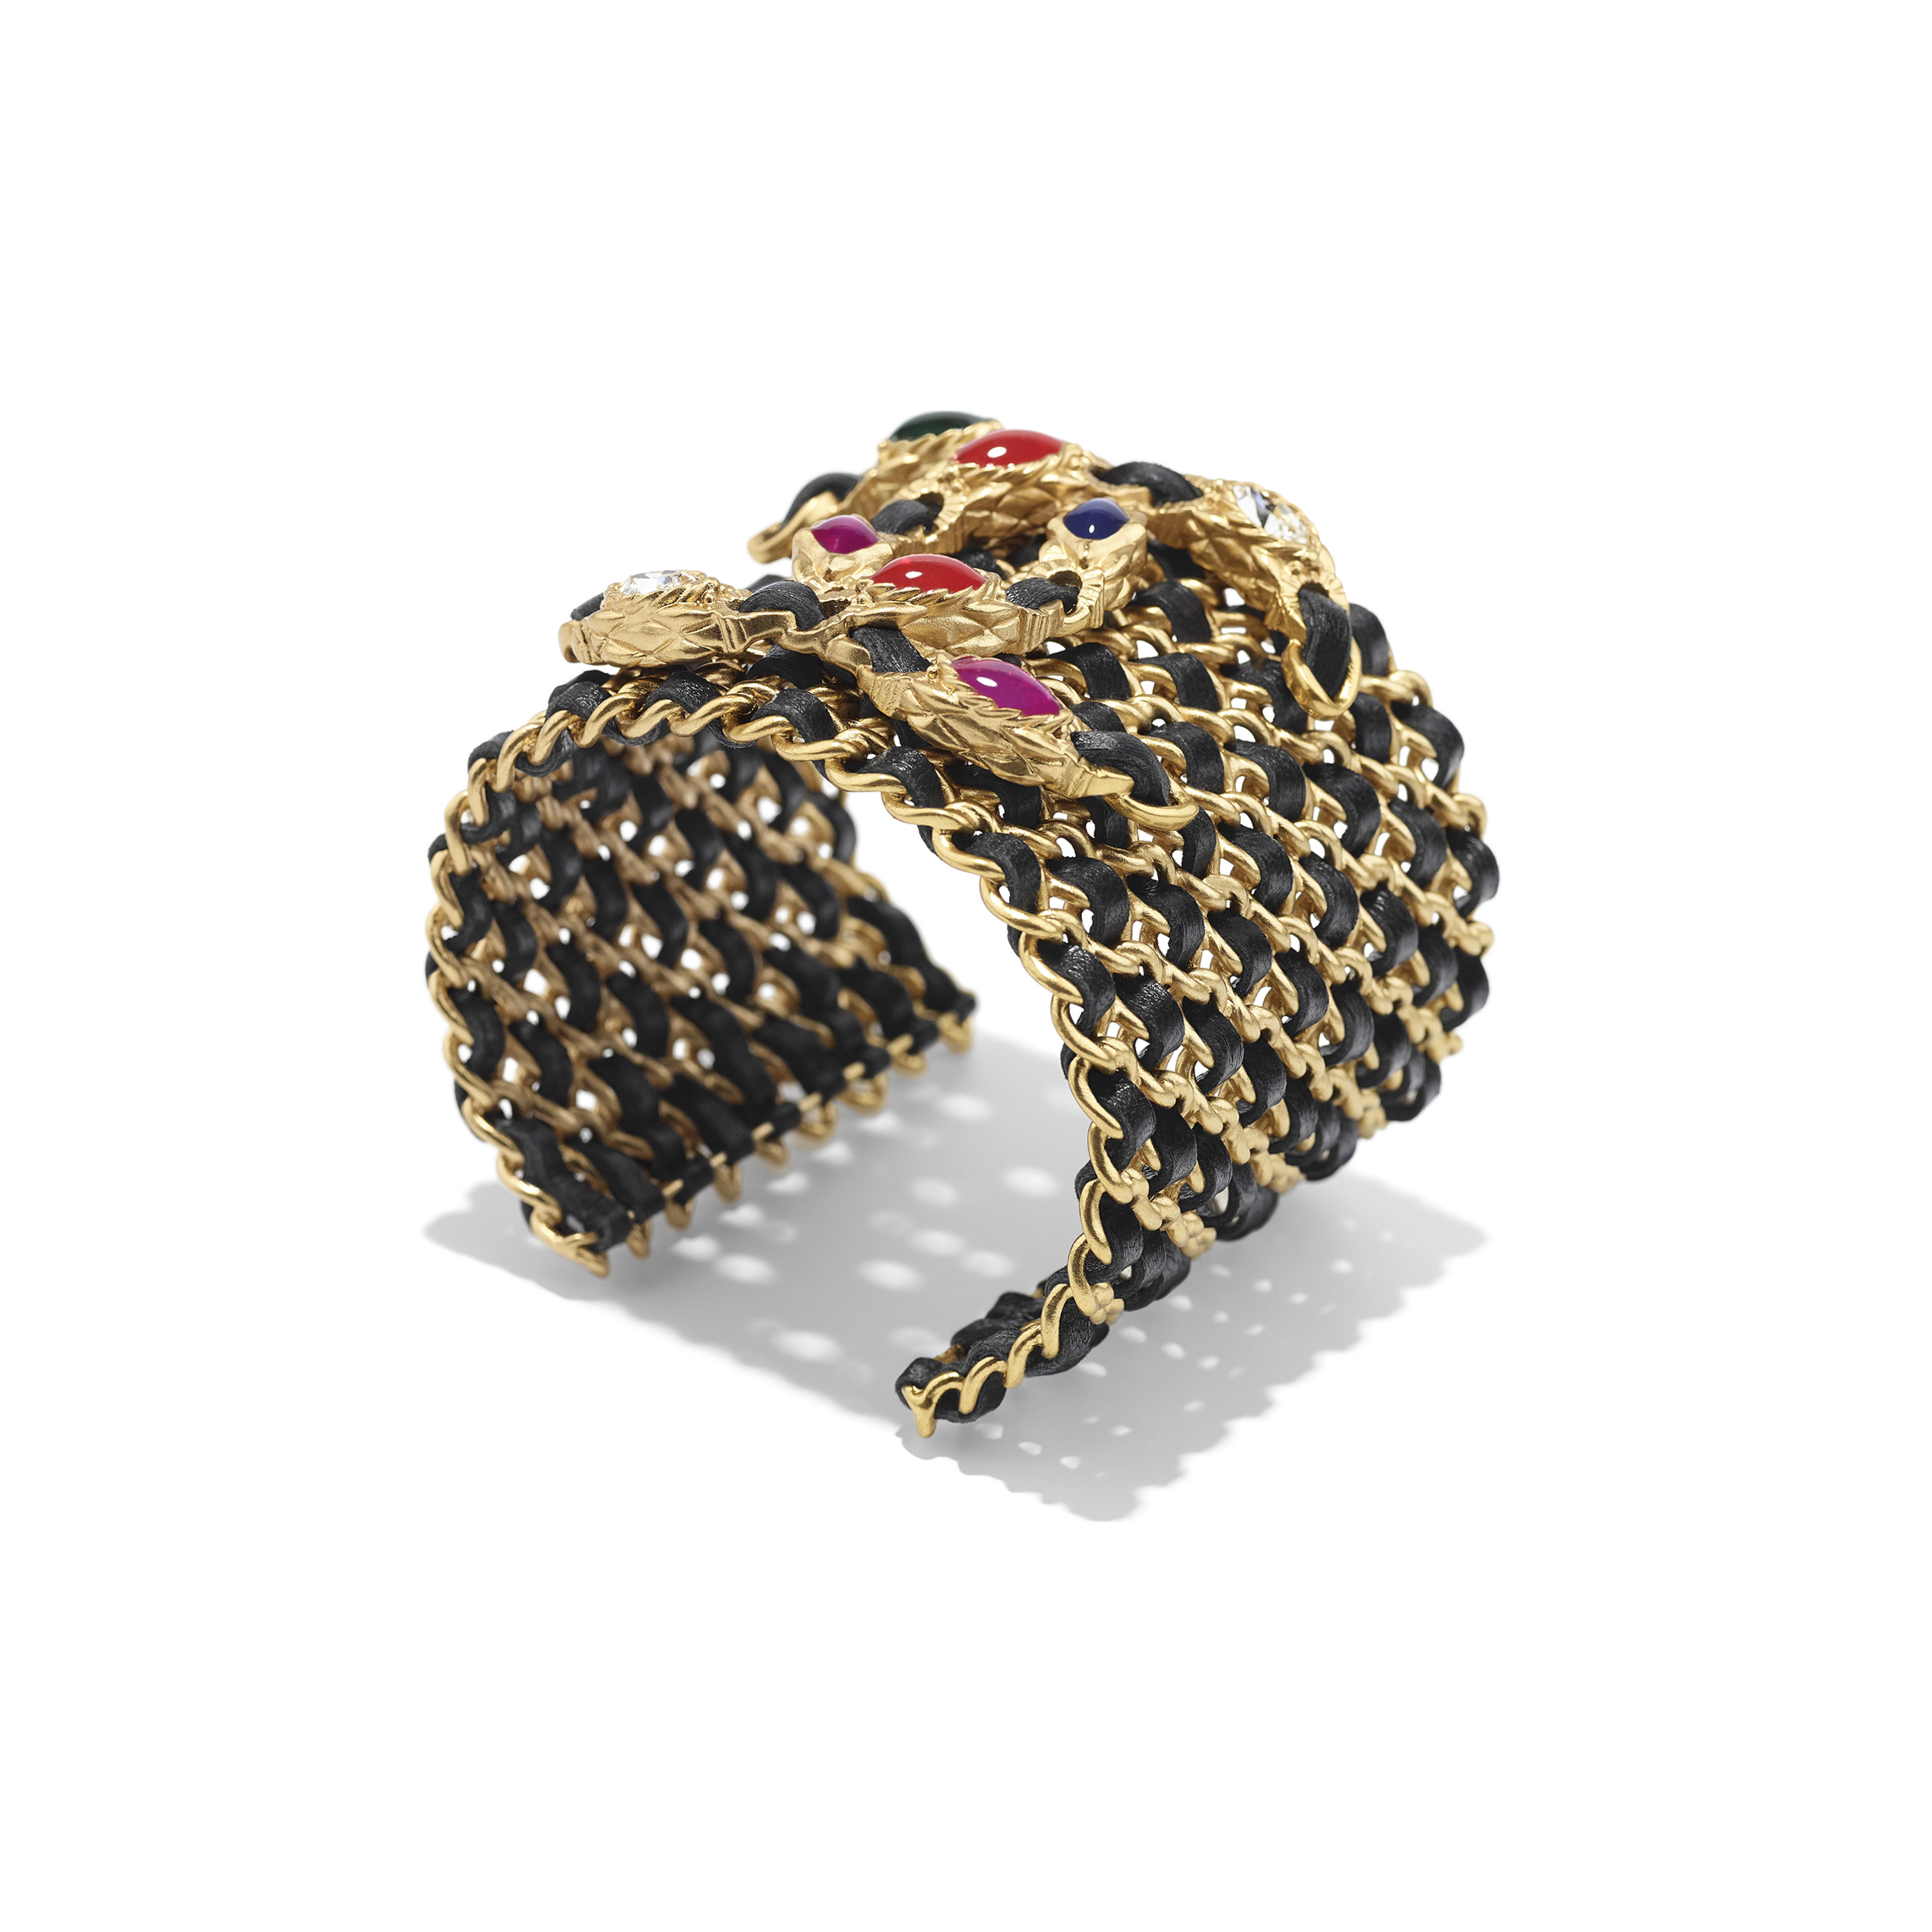 Cuff - Gold, Black, Crystal & Multicolor - Metal, lambskin, diamanté & resin - Alternative view - see full sized version